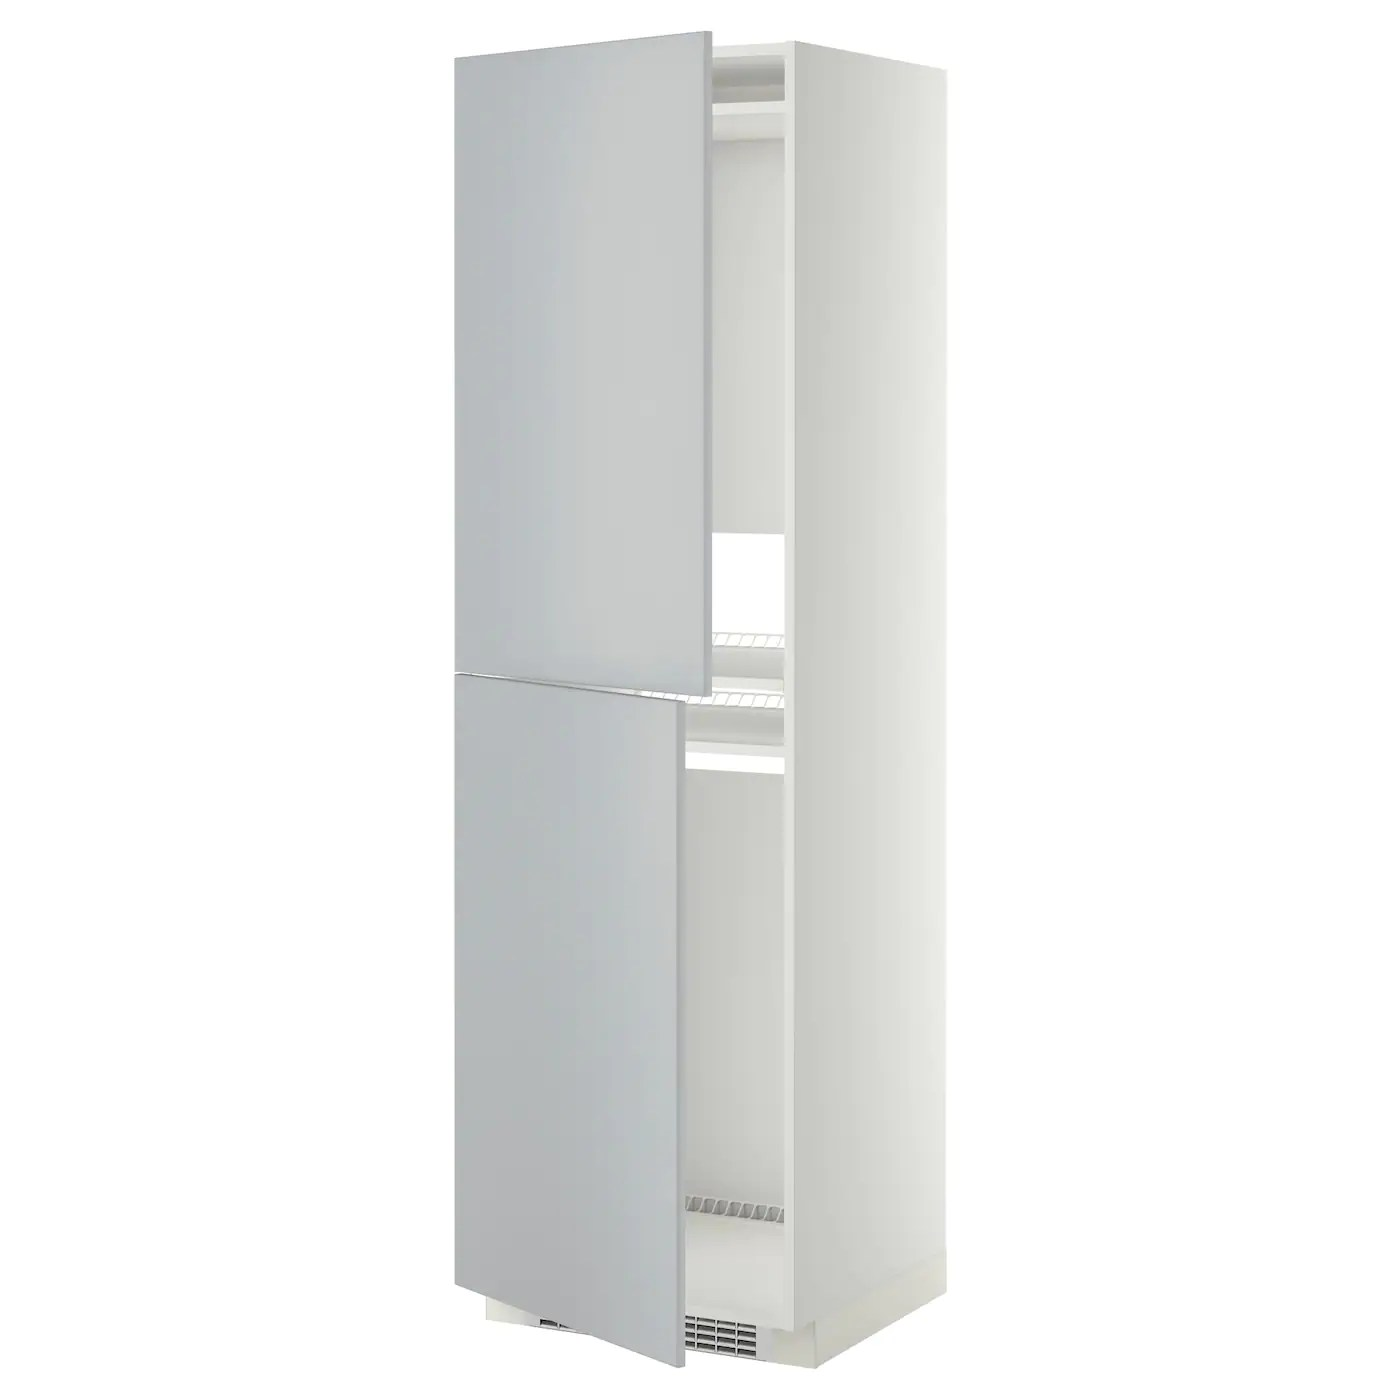 Einbauschrank Für Kühlschrank Metod High Cabinet For Fridge Freezer White Veddinge Grey